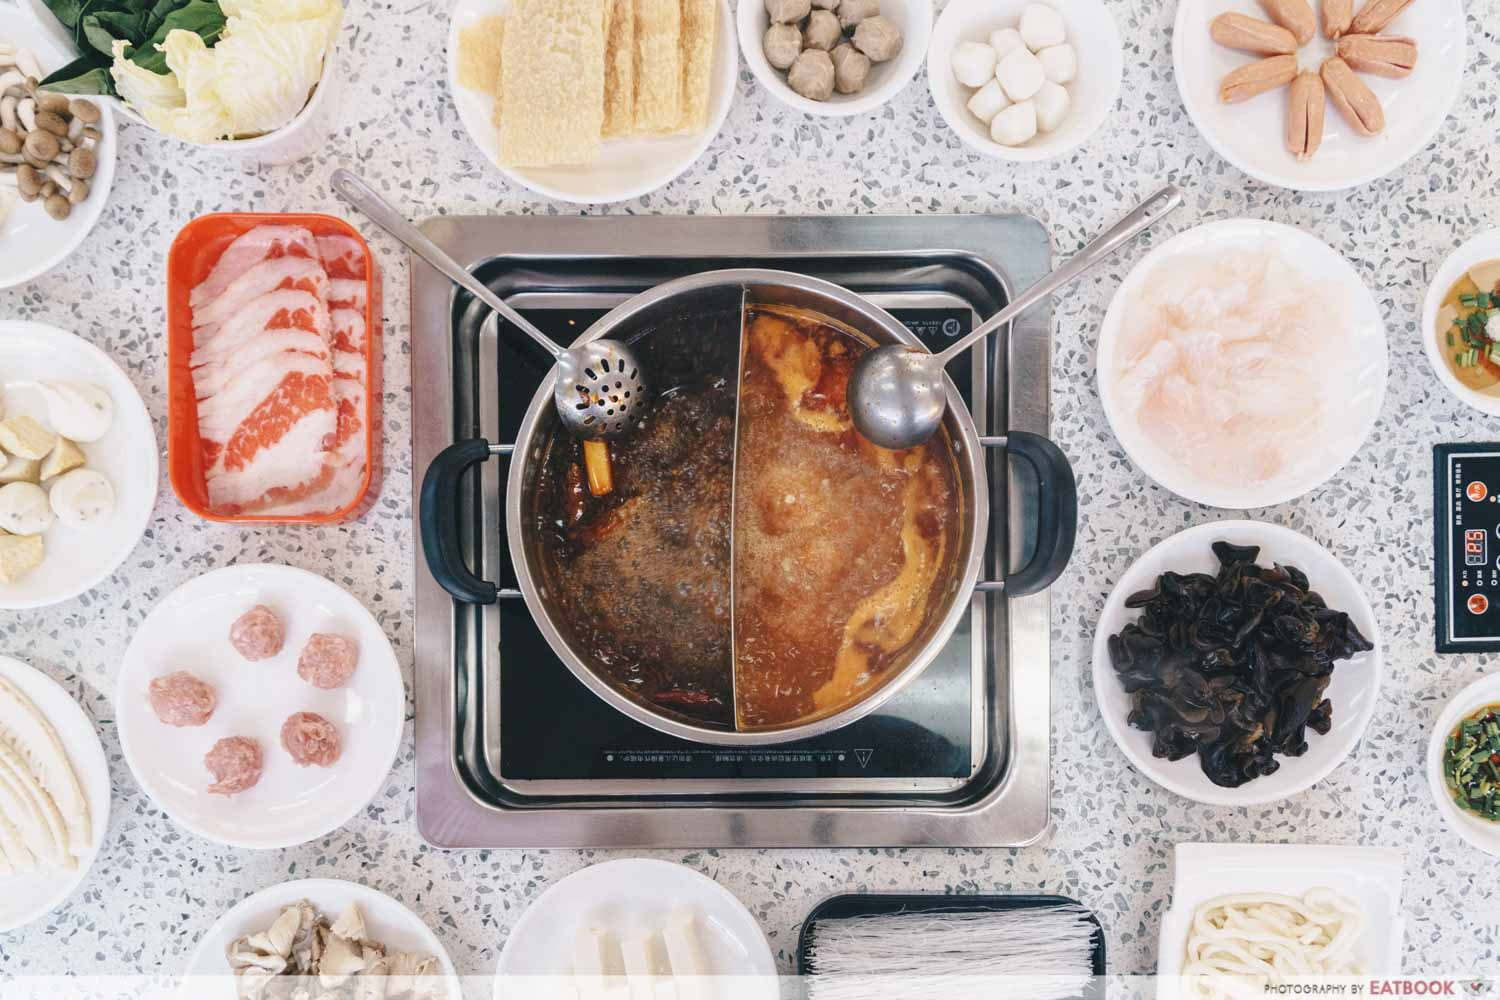 12 New Restaurants June - Shan Pin Steamboat flatlay